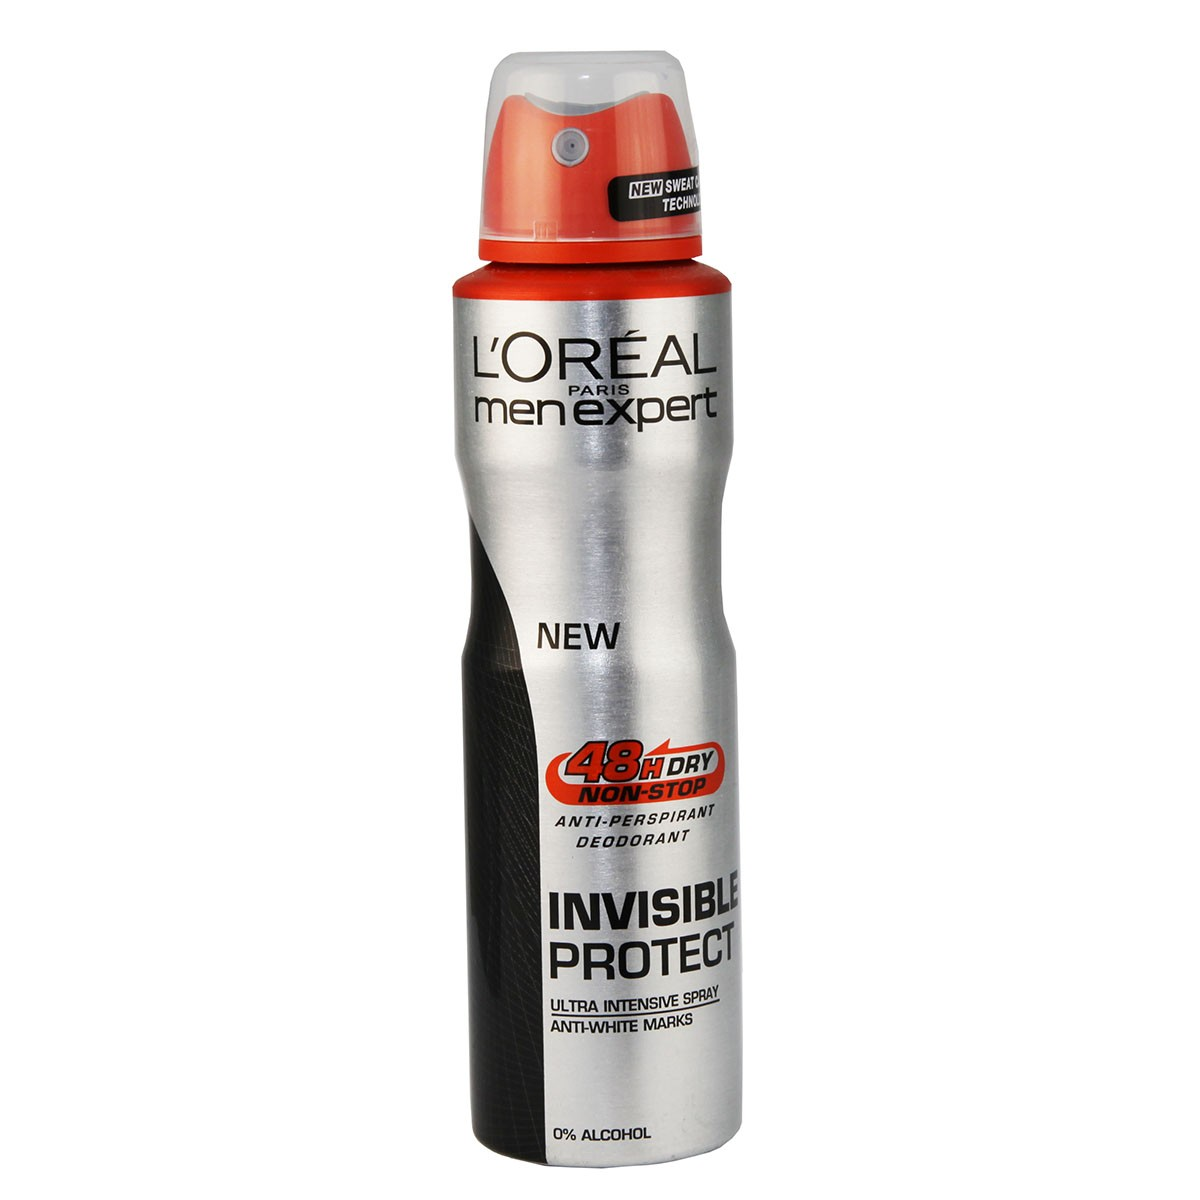 L'Oreal Paris Men Expert Zero Trace Deodorant ( Invisible Protect)